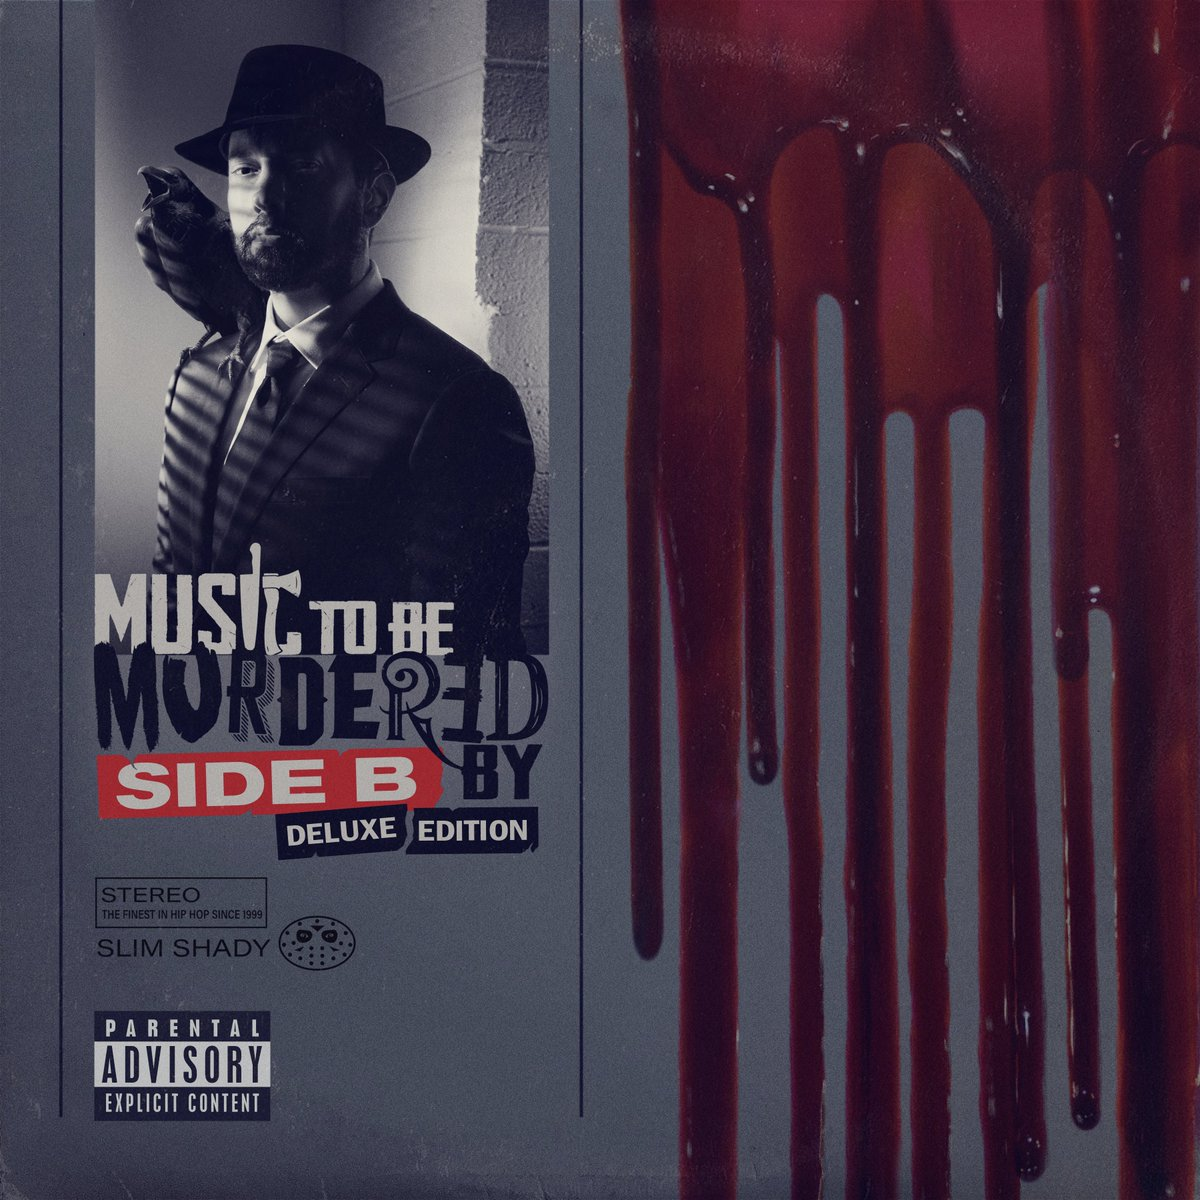 #MTBMB @Eminem hits us with 16 more tracks!  Music To Be Murdered By - Side B (Deluxe Edition) out now.